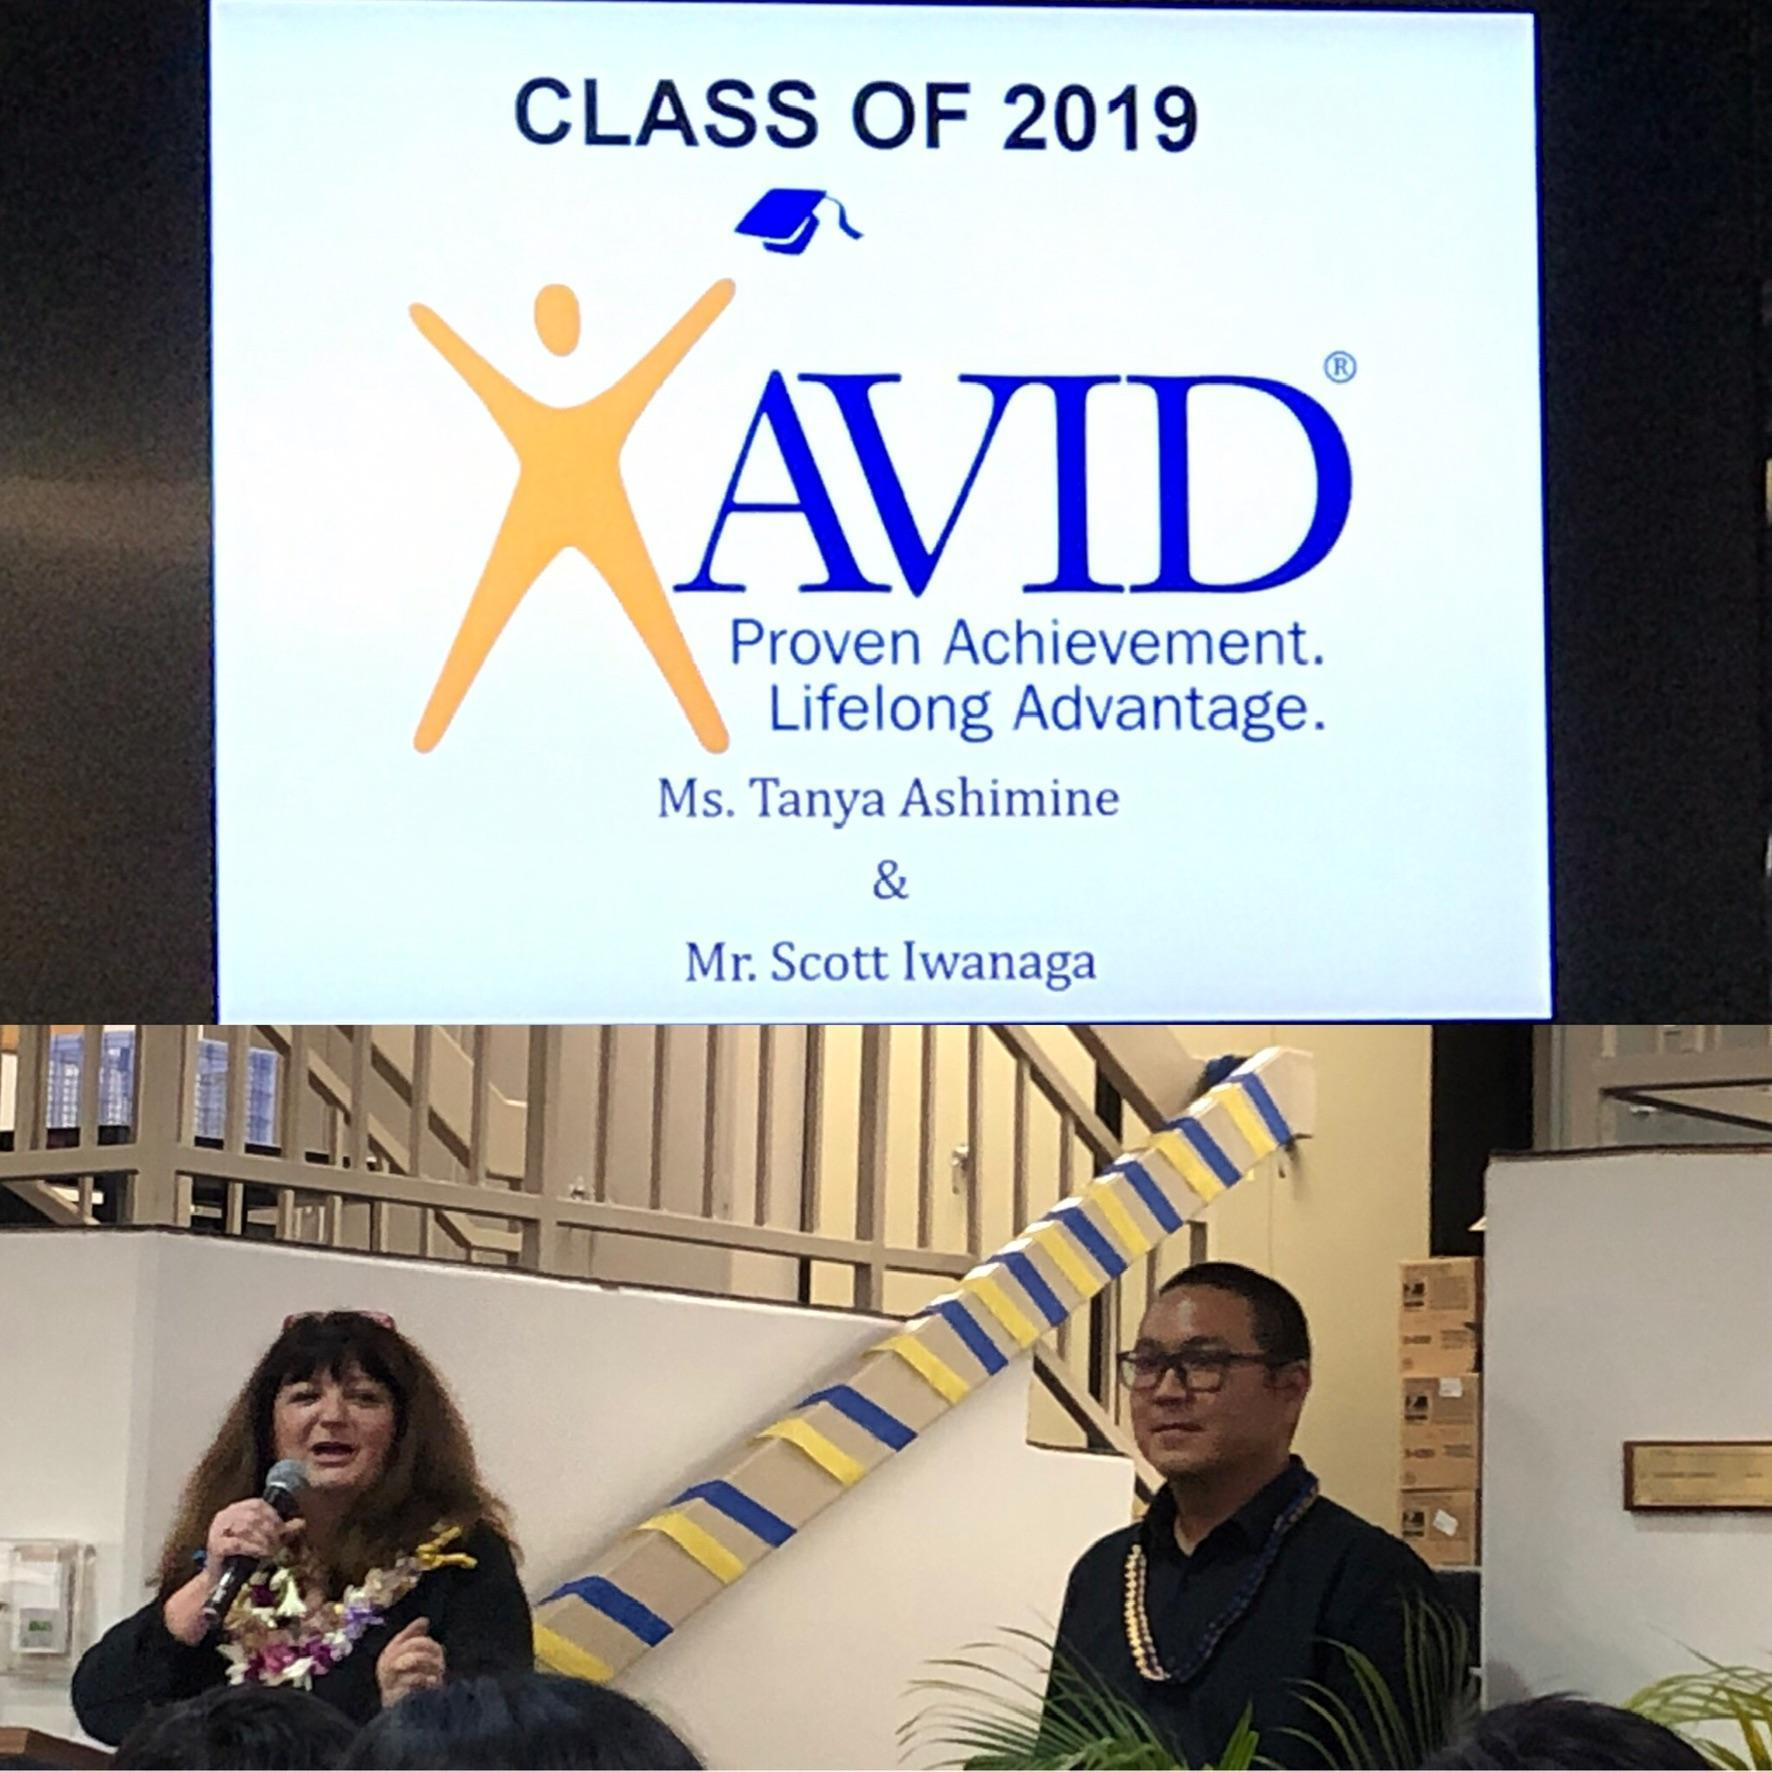 AVID Teachers at ceremony